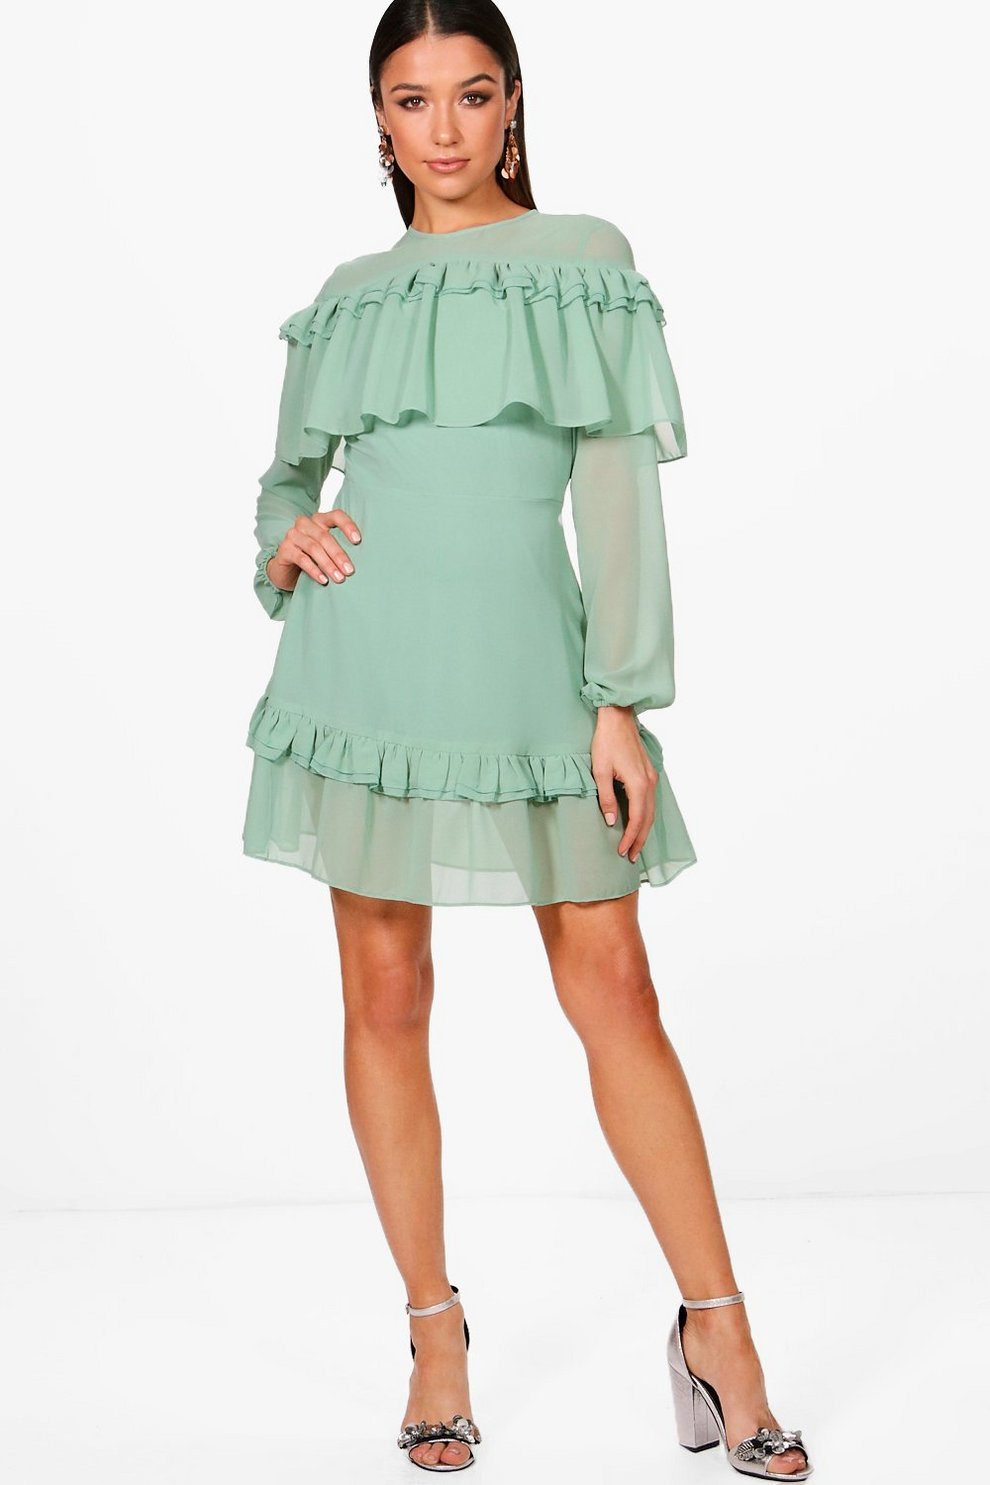 Boohoo Ruffle Shoulder and Hem Tea Dress High Quality For Sale Z6YkdSX